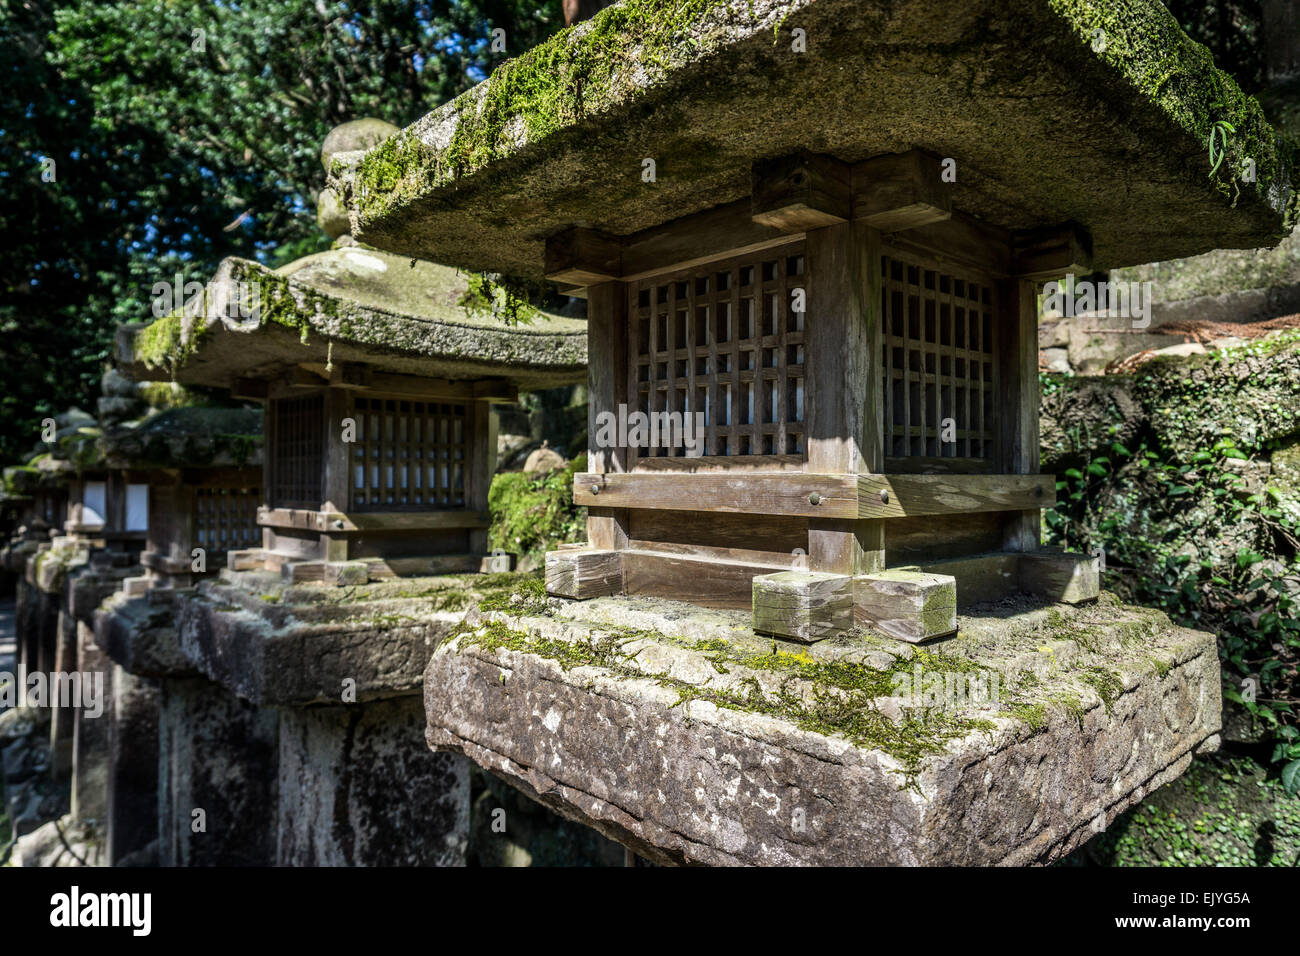 Close up view of several ancient Japanese stone lanterns in the forest near Kasuga Grand Shrine, Nara, Japan - Stock Image